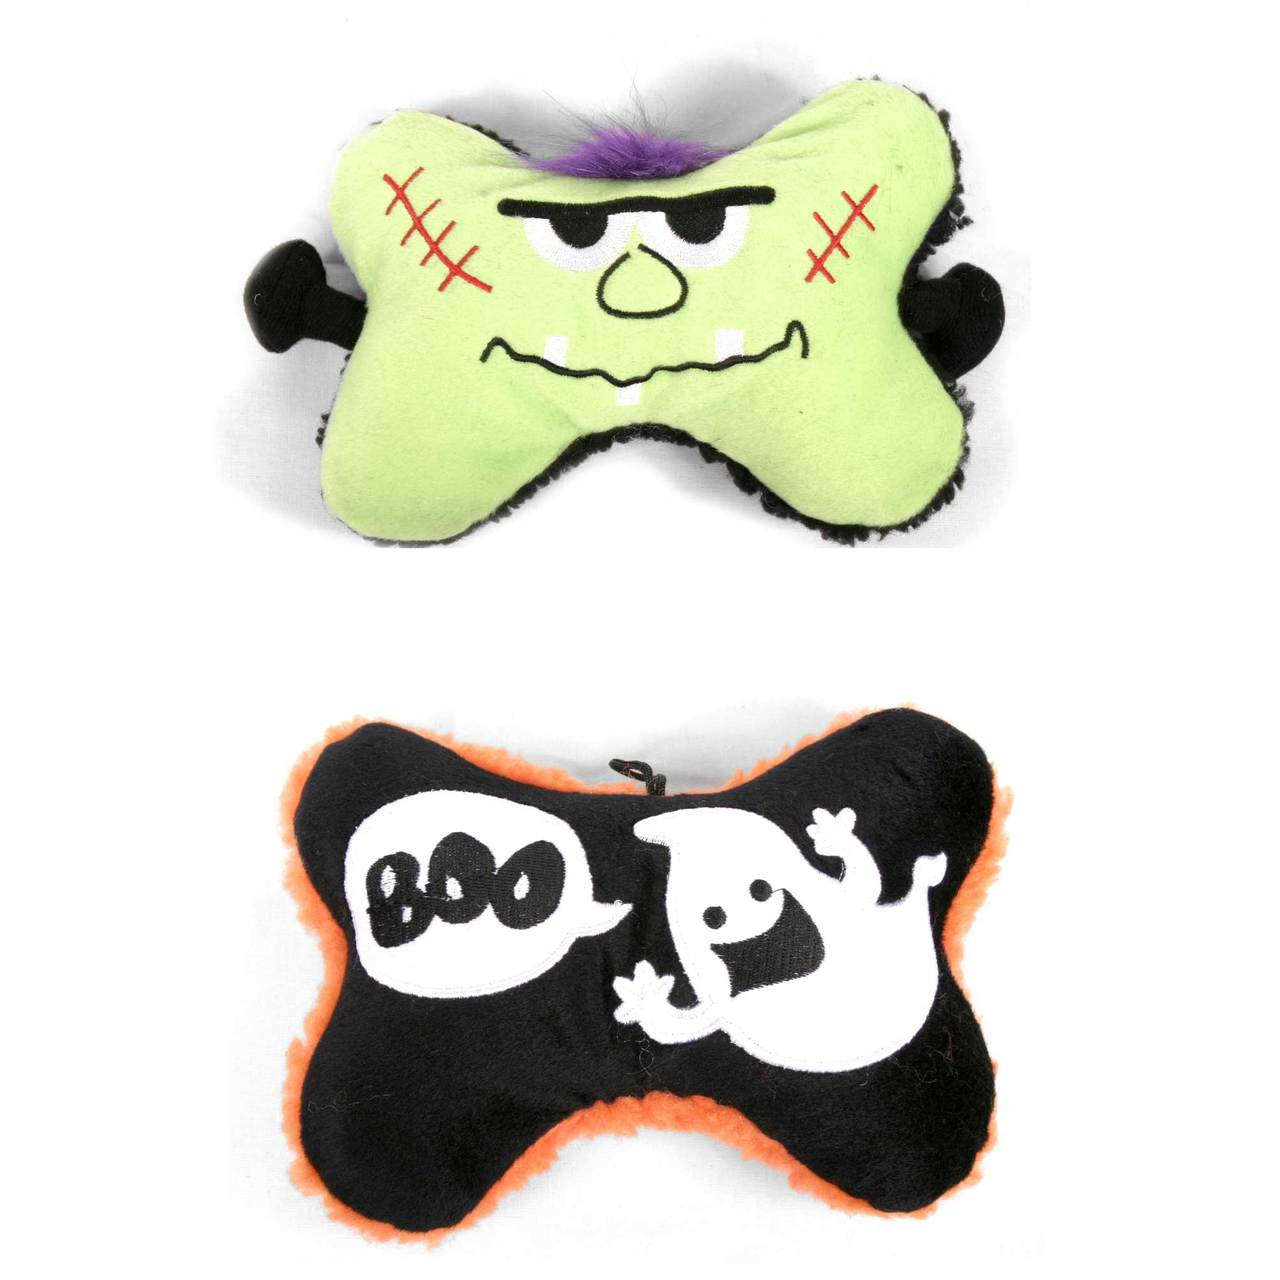 Halloween Squeaker Dog Toy 2 Pack PFT-1783-2